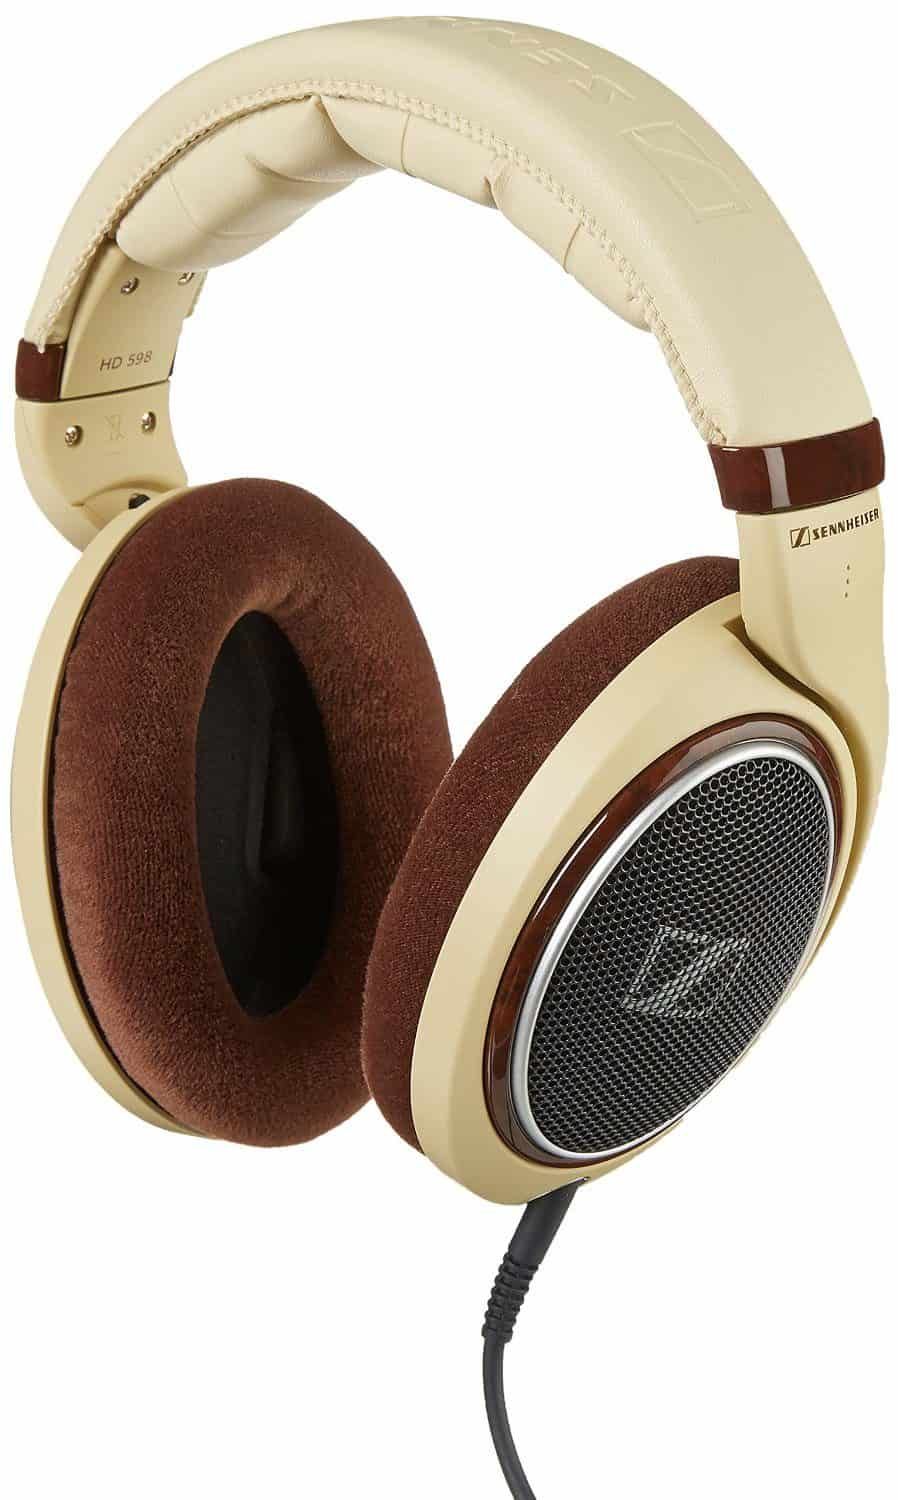 Sennheiser HD 598 Over-Ear Headphones – Ivory